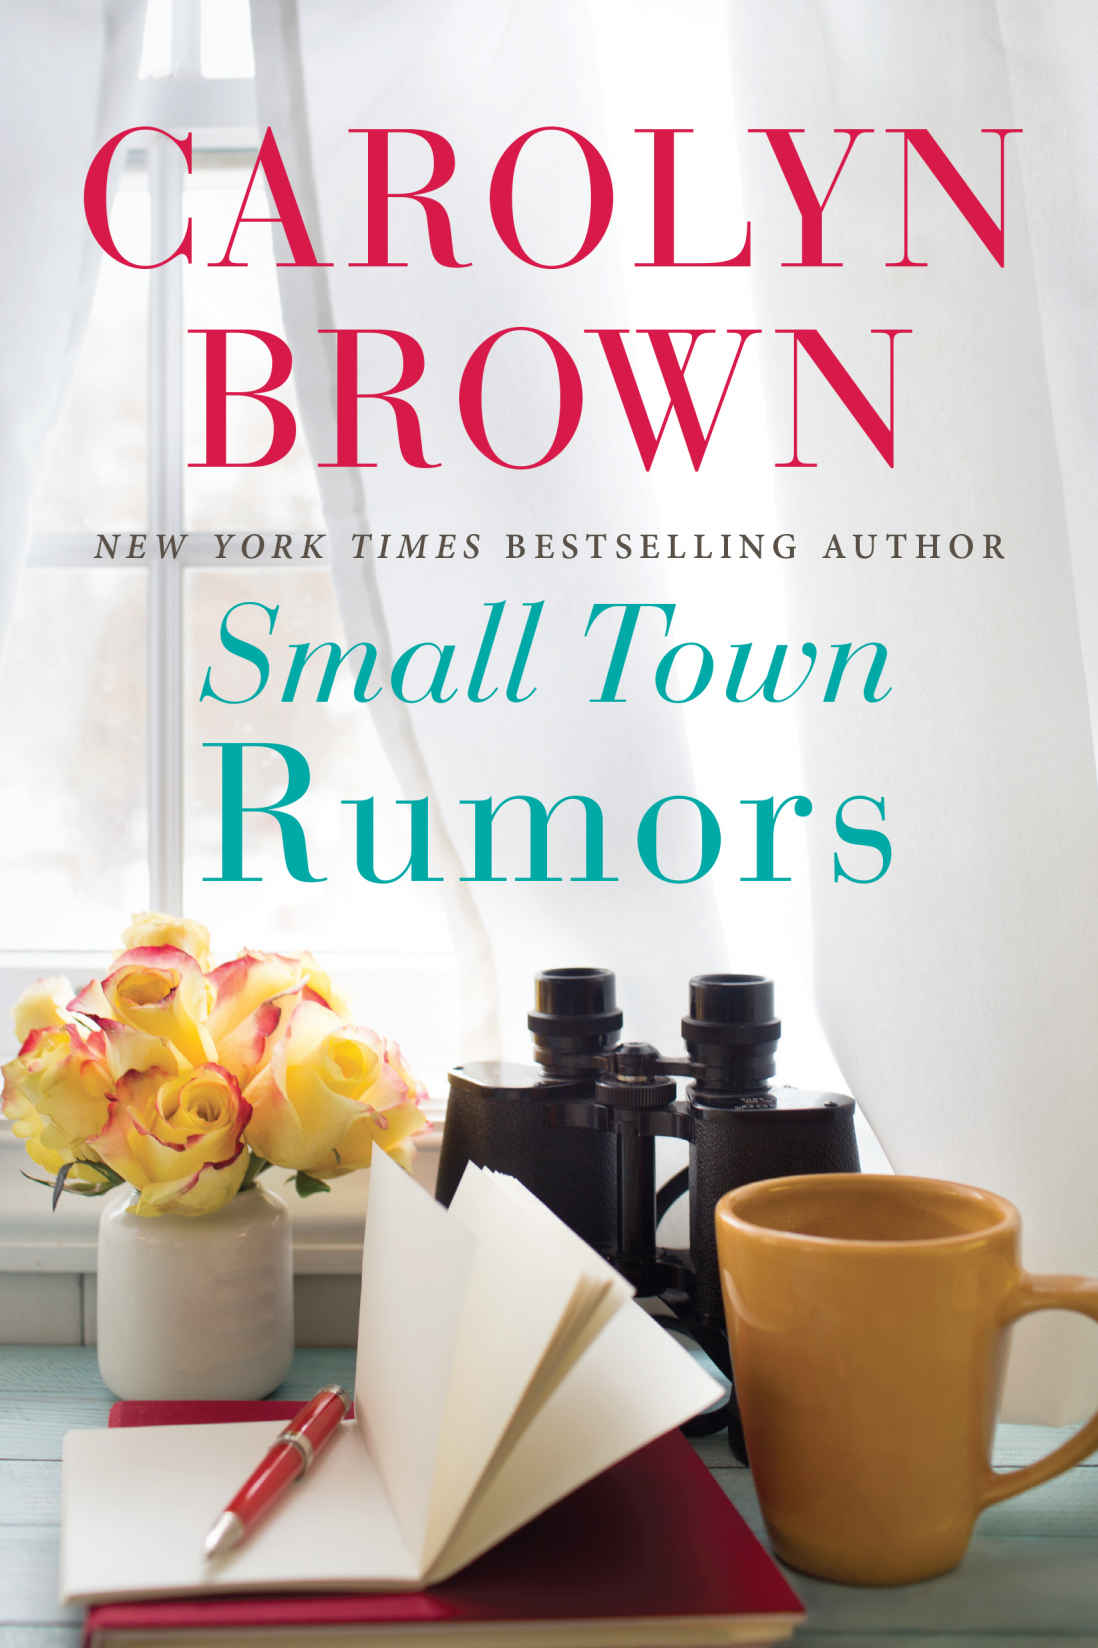 Small Town Rumors - Carolyn Brown [kindle] [mobi]